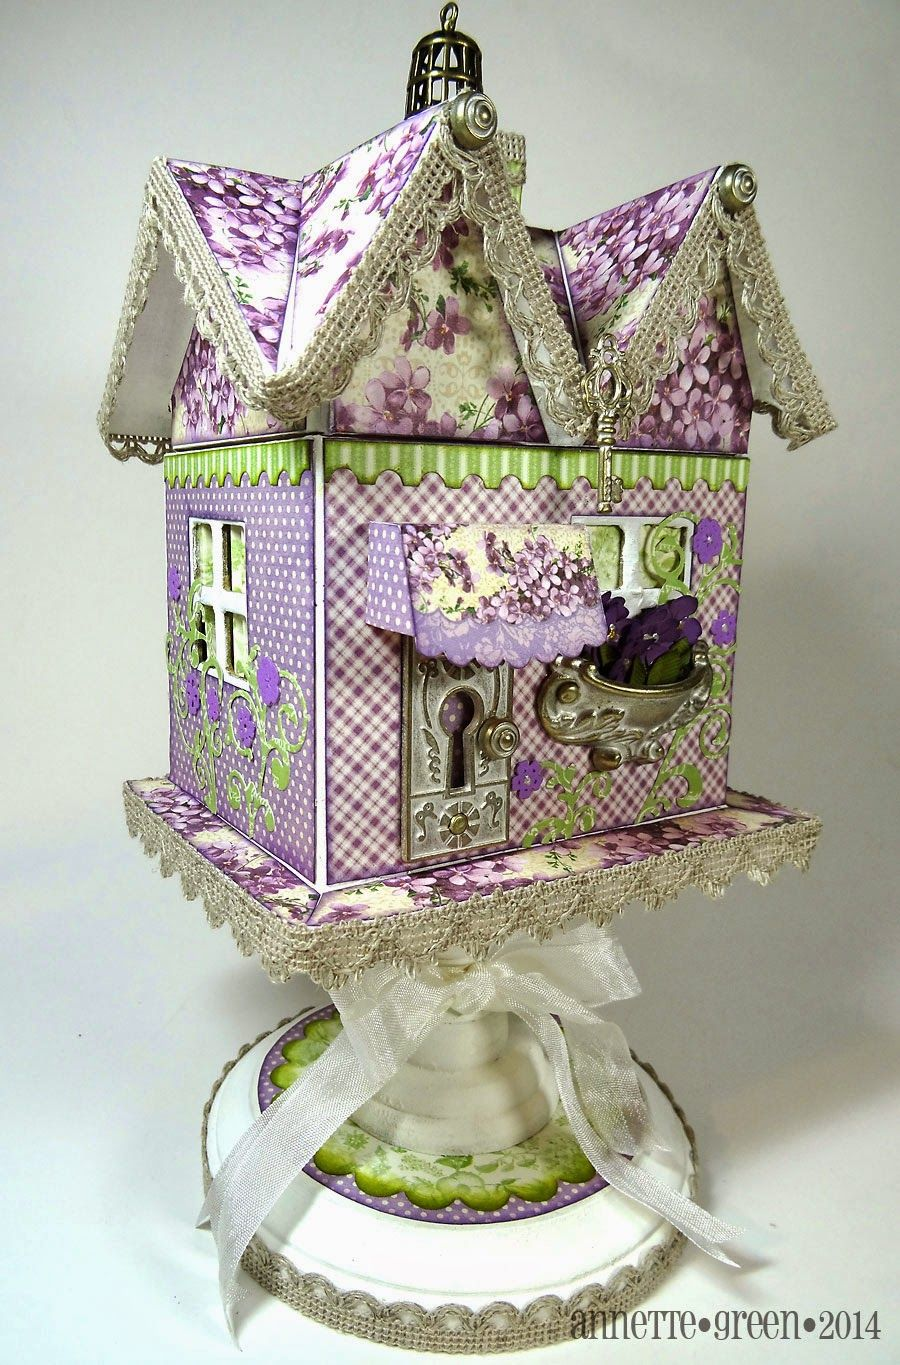 Tabletop birdhouse using Graphic 45 Sweet Sentiments and Shabby Chic staples, by Annette Green.